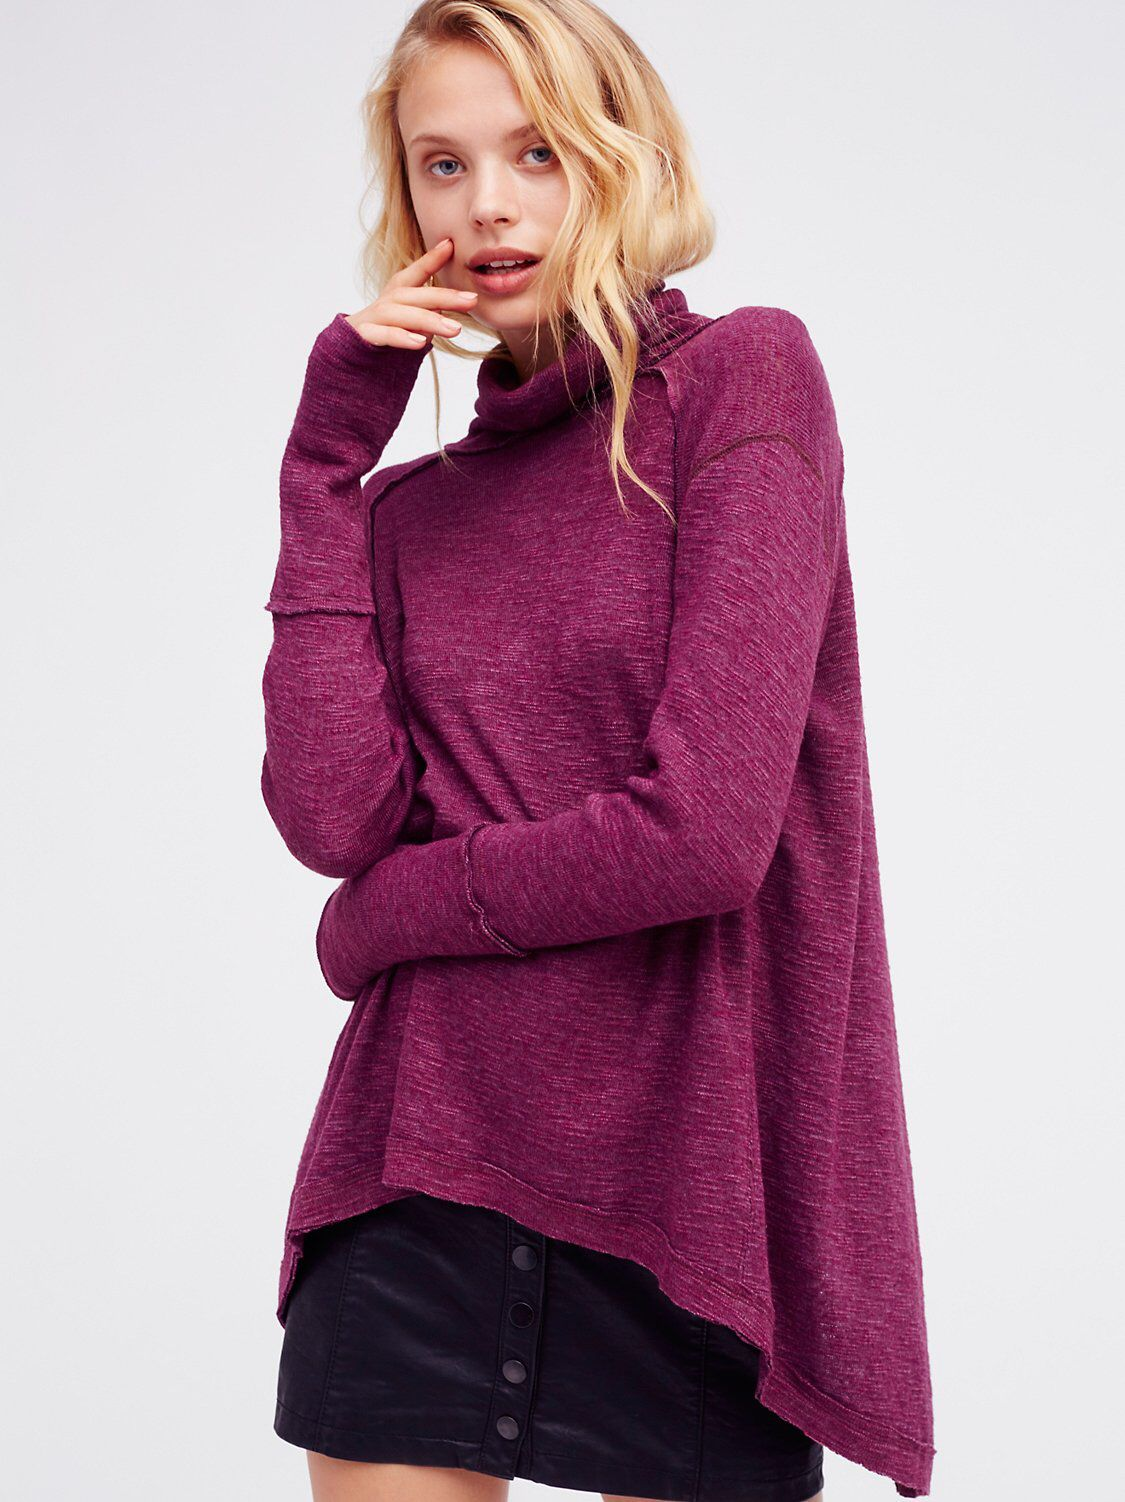 Long Sleeve Turtleneck from Free People!